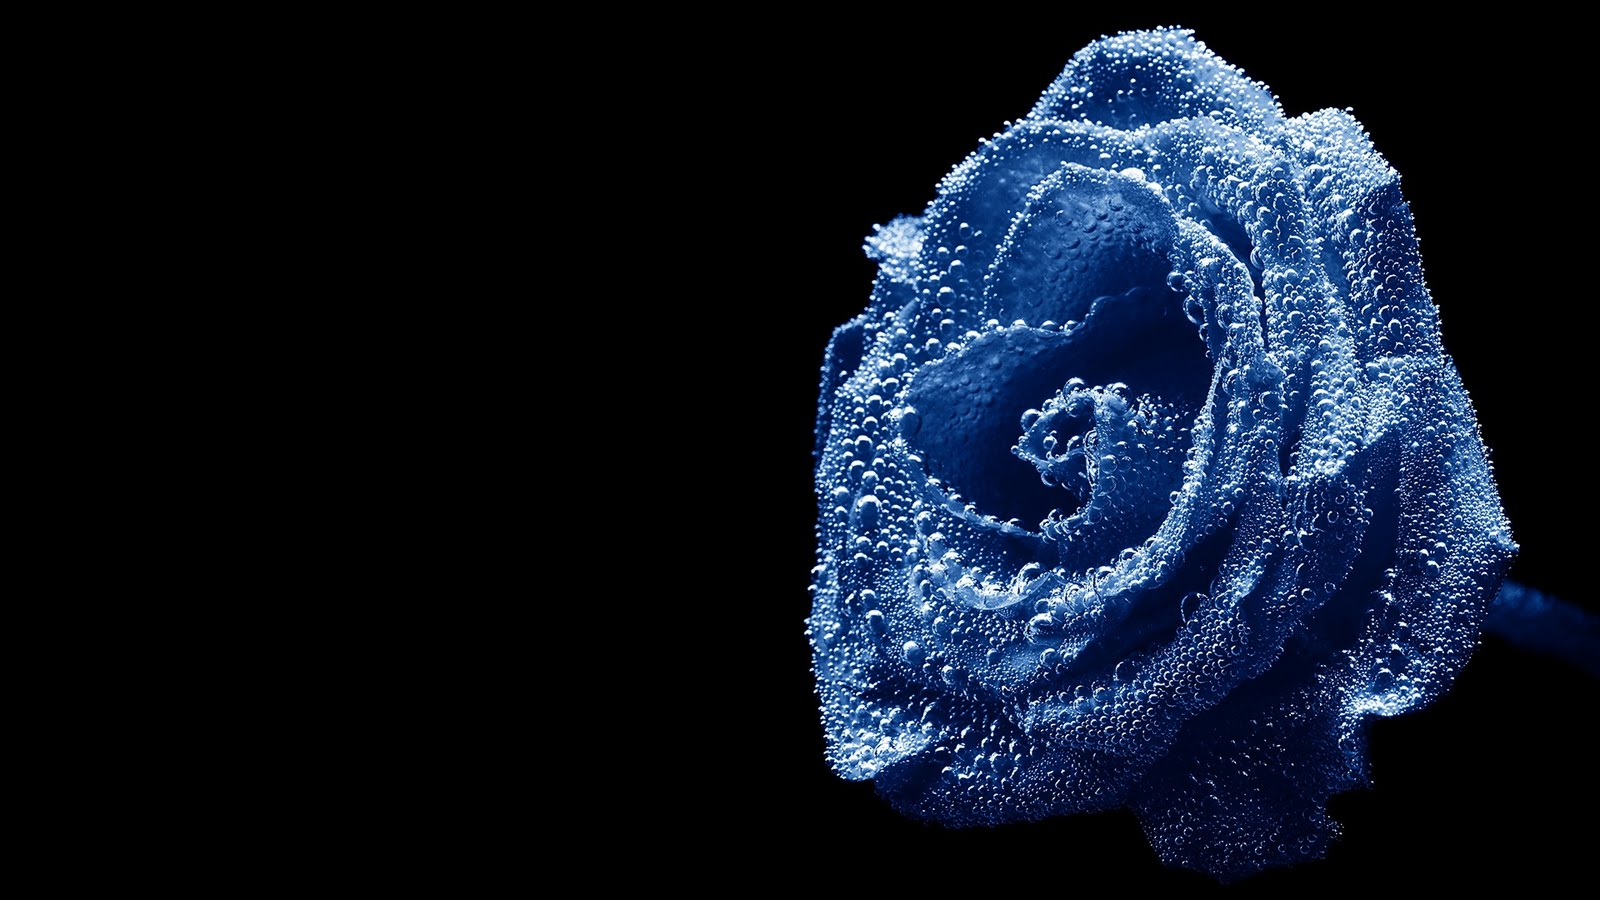 http://2.bp.blogspot.com/-QcUMW8CAUD4/TVo4EWh4RFI/AAAAAAAAAH8/4zTiDEHF56g/s1600/Water-drops-over-a-beautiful-blue-rose-HD-Wallpapers-for-normal-and-widescreen-desktop-background.jpg